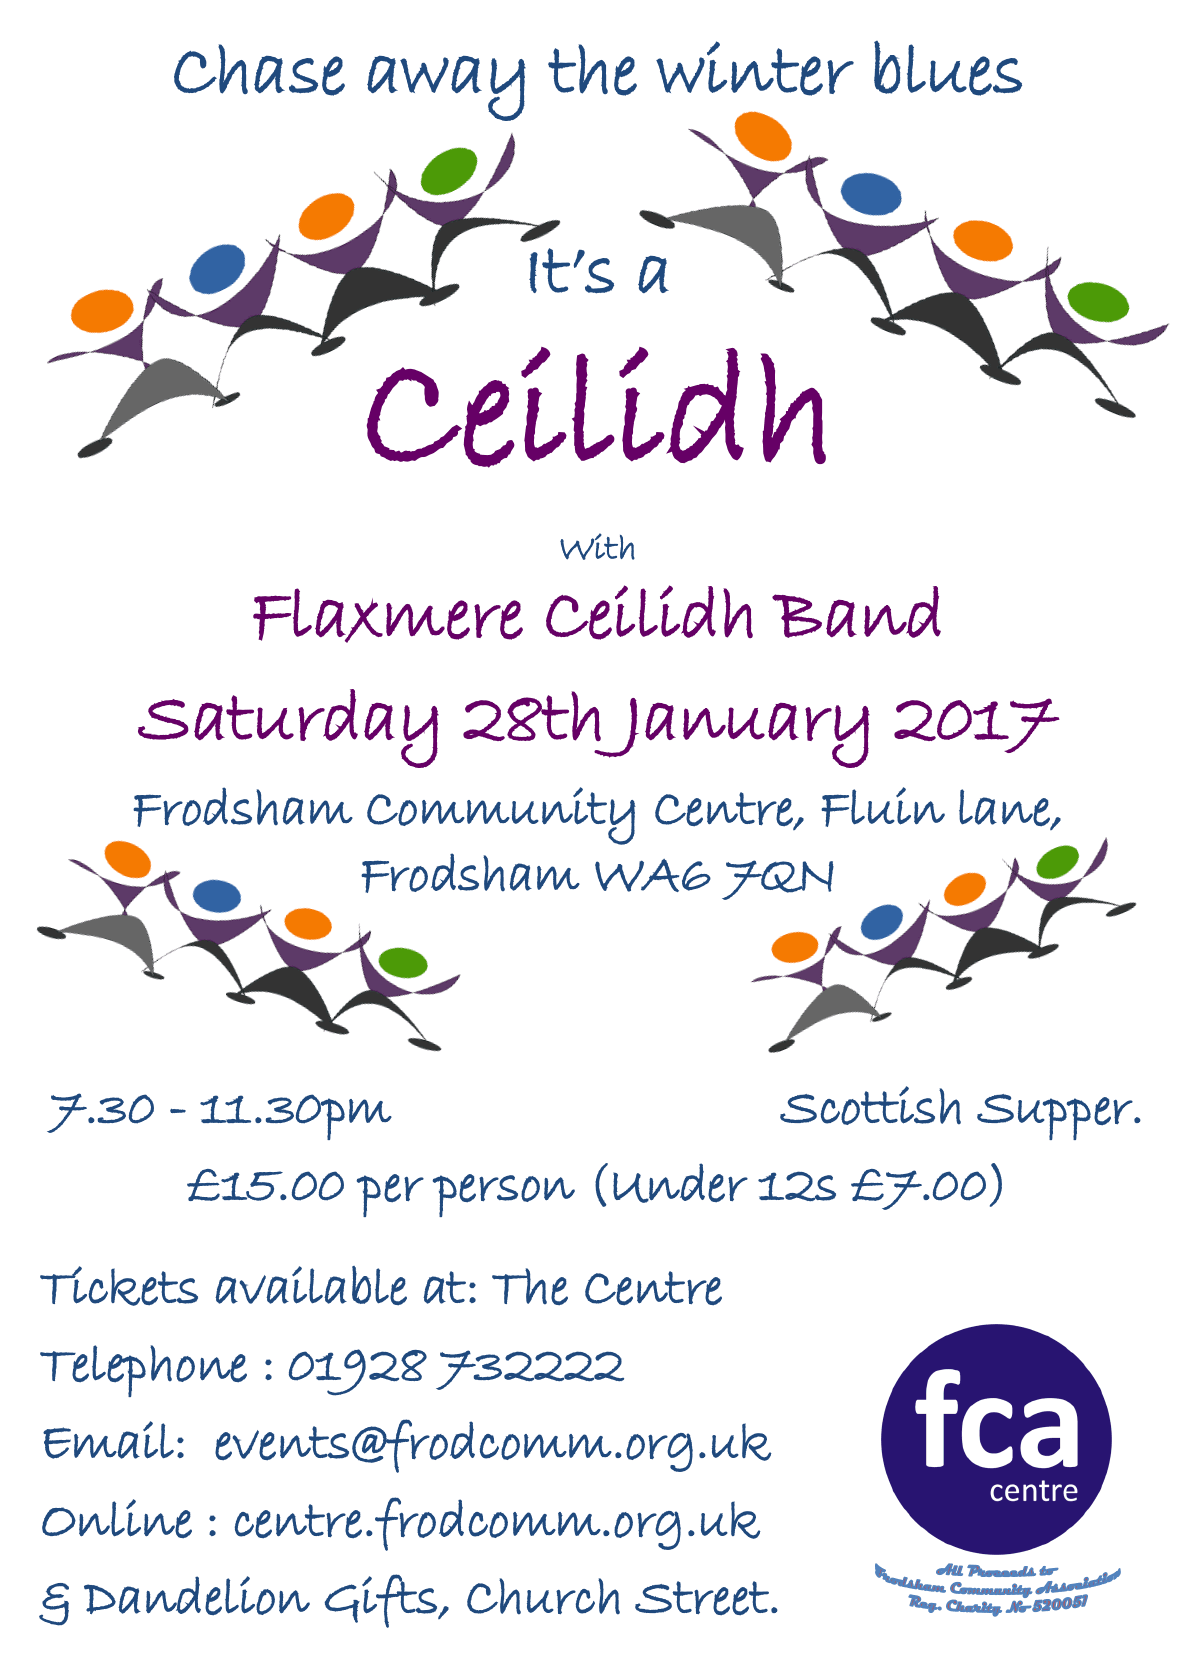 flaxmere ceilidh band poster jan 2017